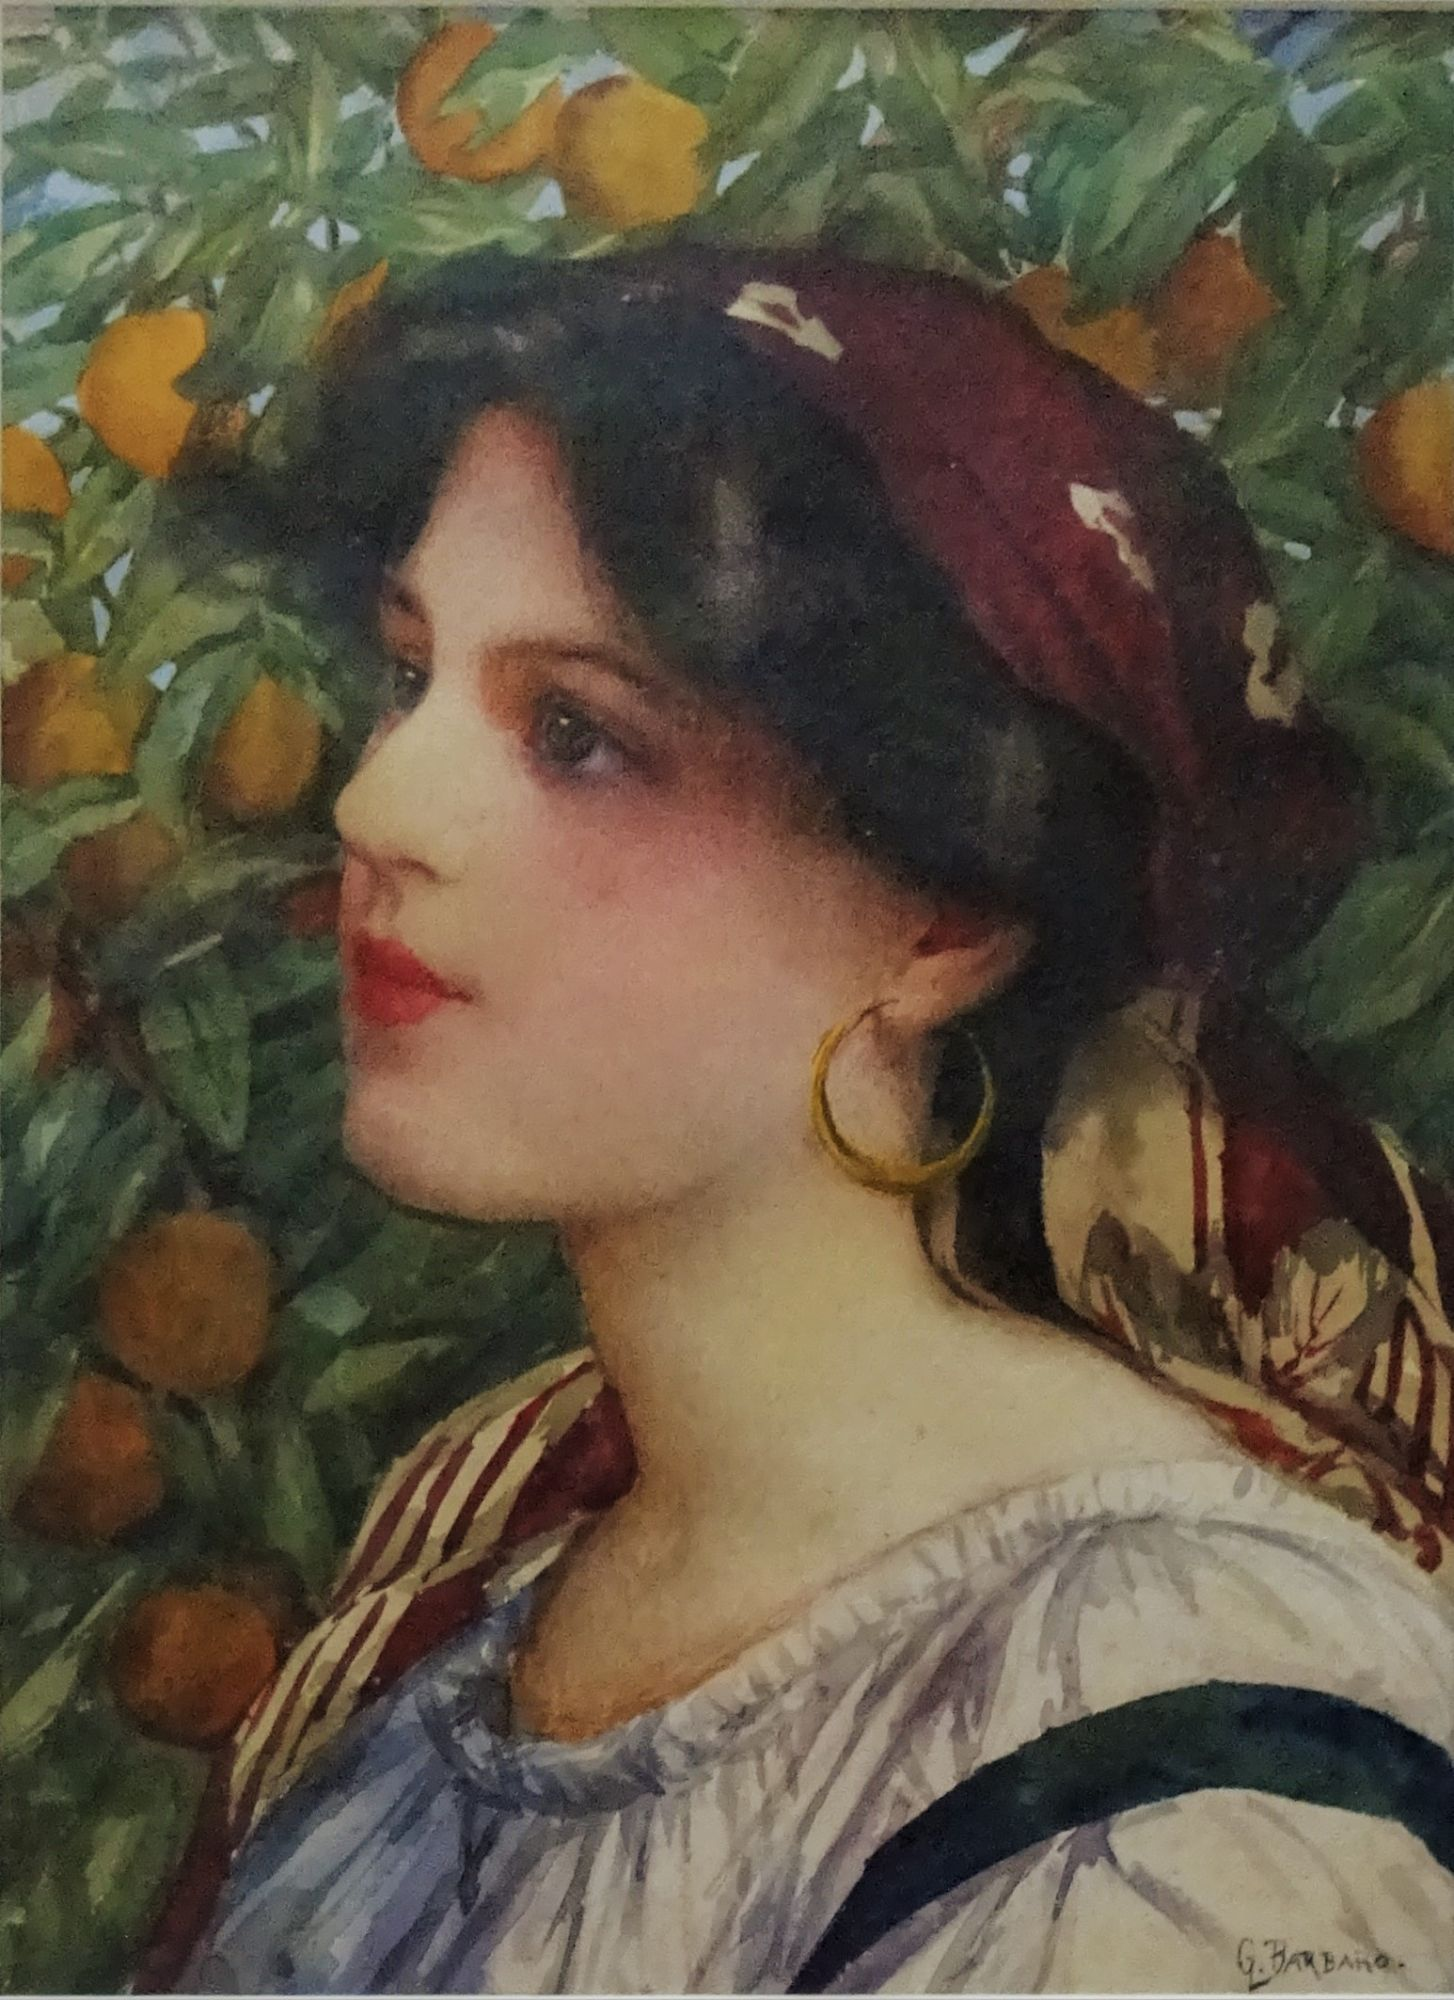 Amy Barbaro portrait, signed G. Barbaro, c1900.